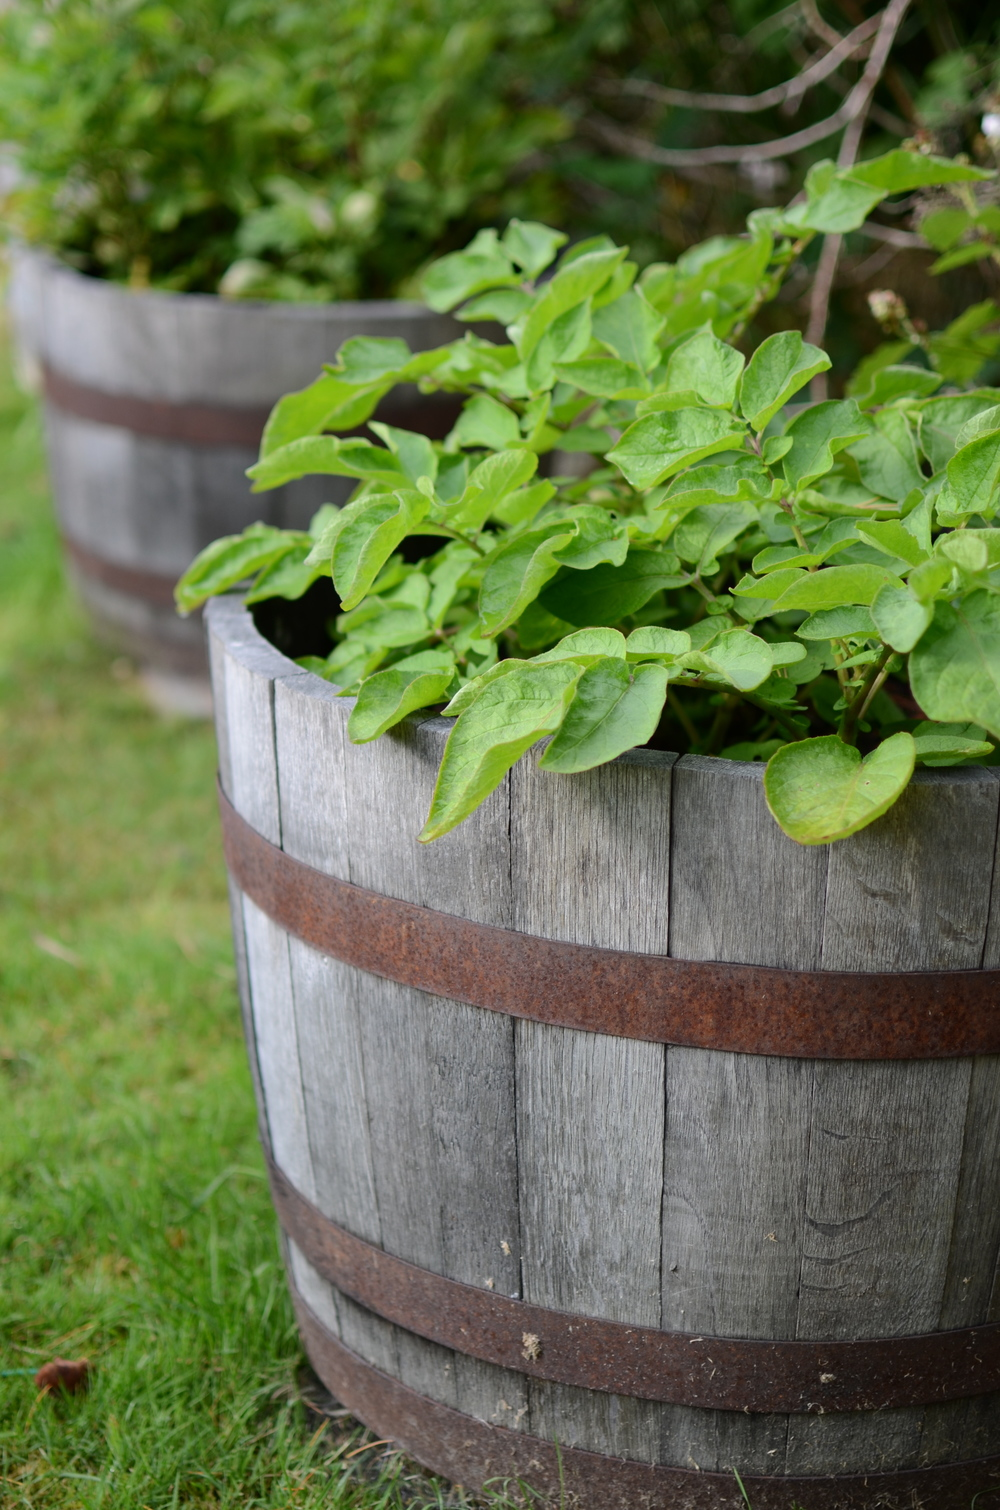 Potatoes in a wine barrel - photo by Seattle Urban Farm Company